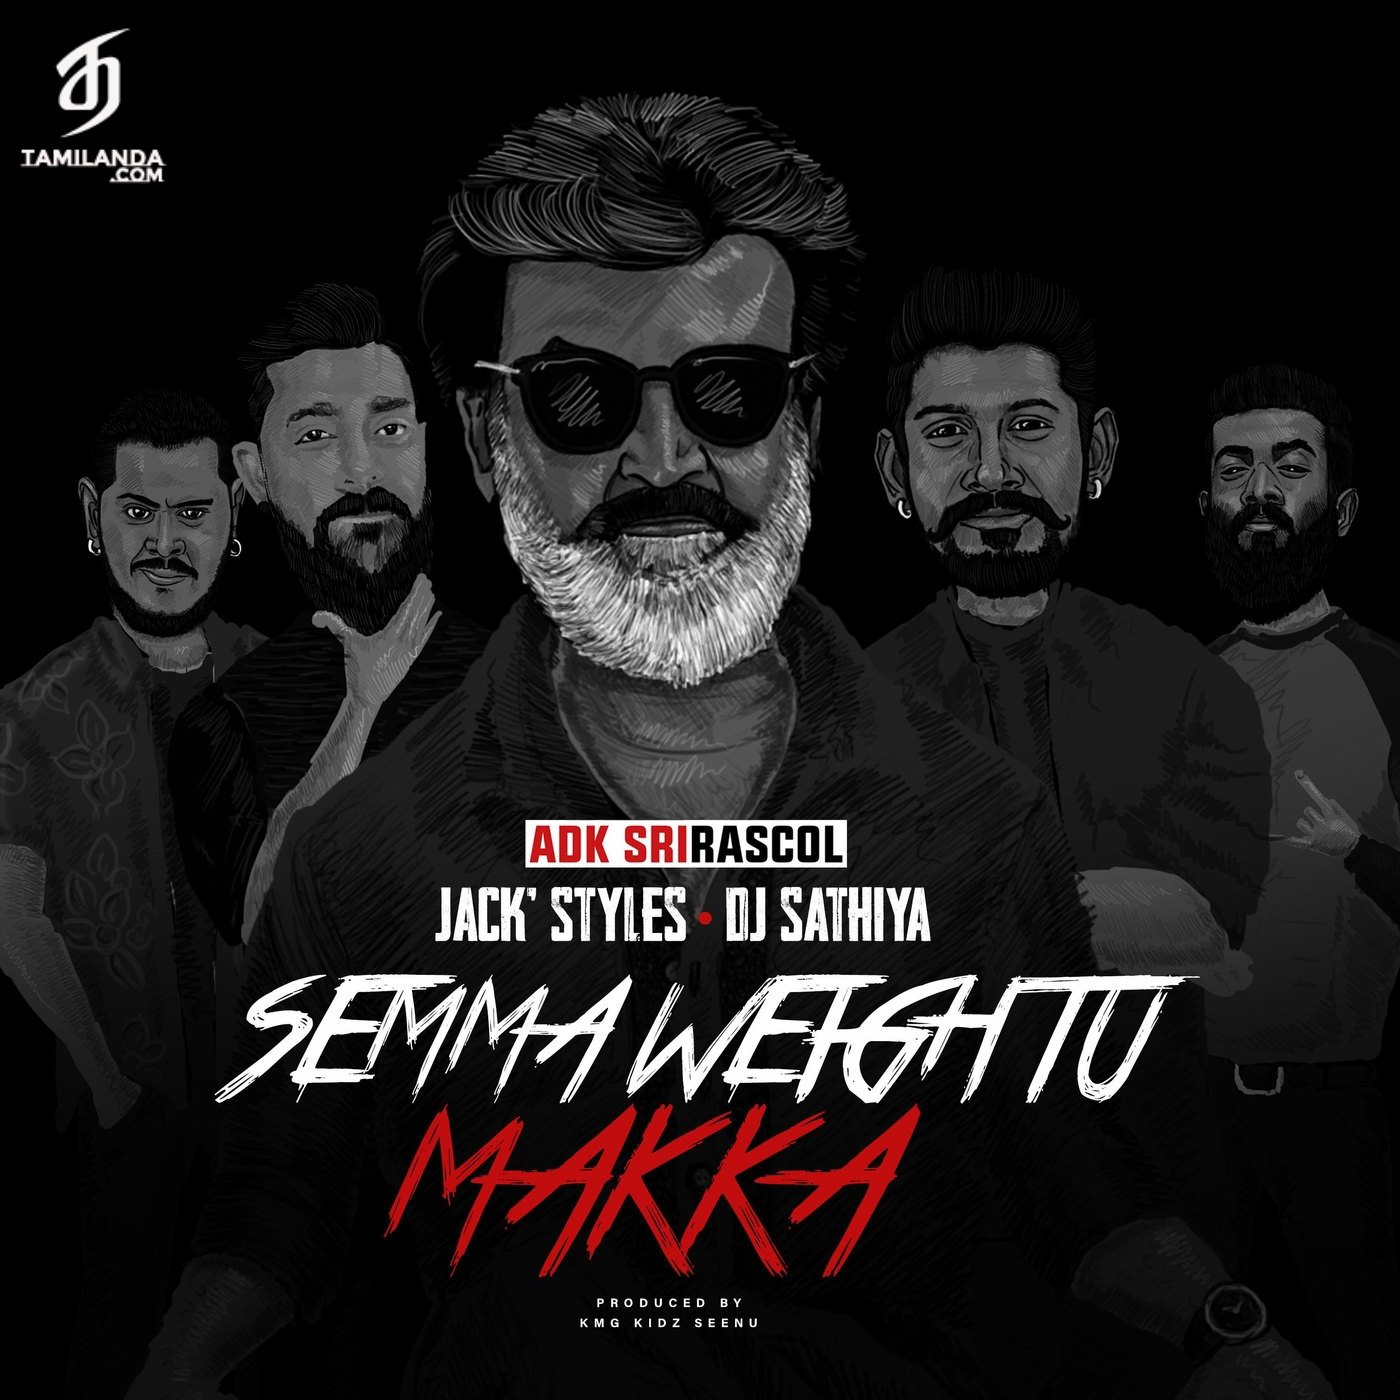 Semma Weightu Makka (Single) FLAC Song